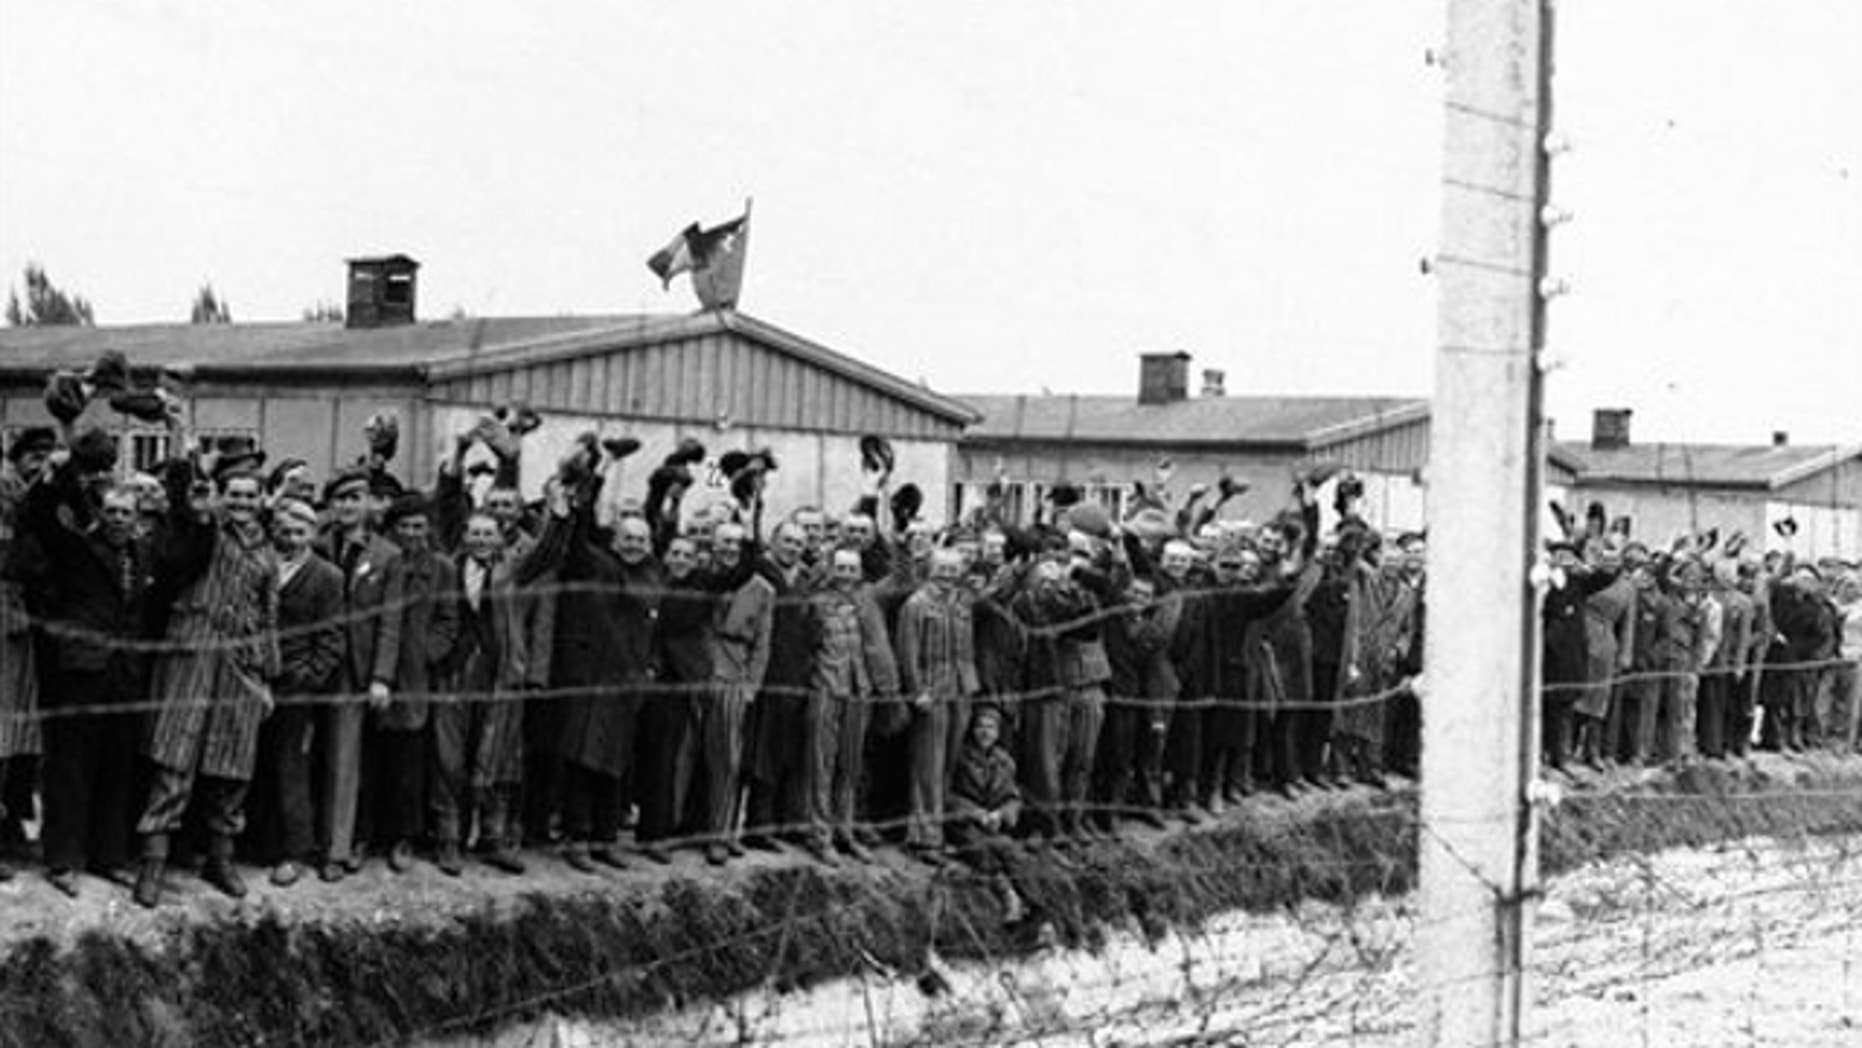 UNDATED: Prisoners at the electric fence of Dachau concentration camp cheer the Americans. German prosecutors say they are investigating a former Nazi concentration camp guard in the Berlin area on suspicion of murder after receiving a tip from the Simon Wiesenthal Center.